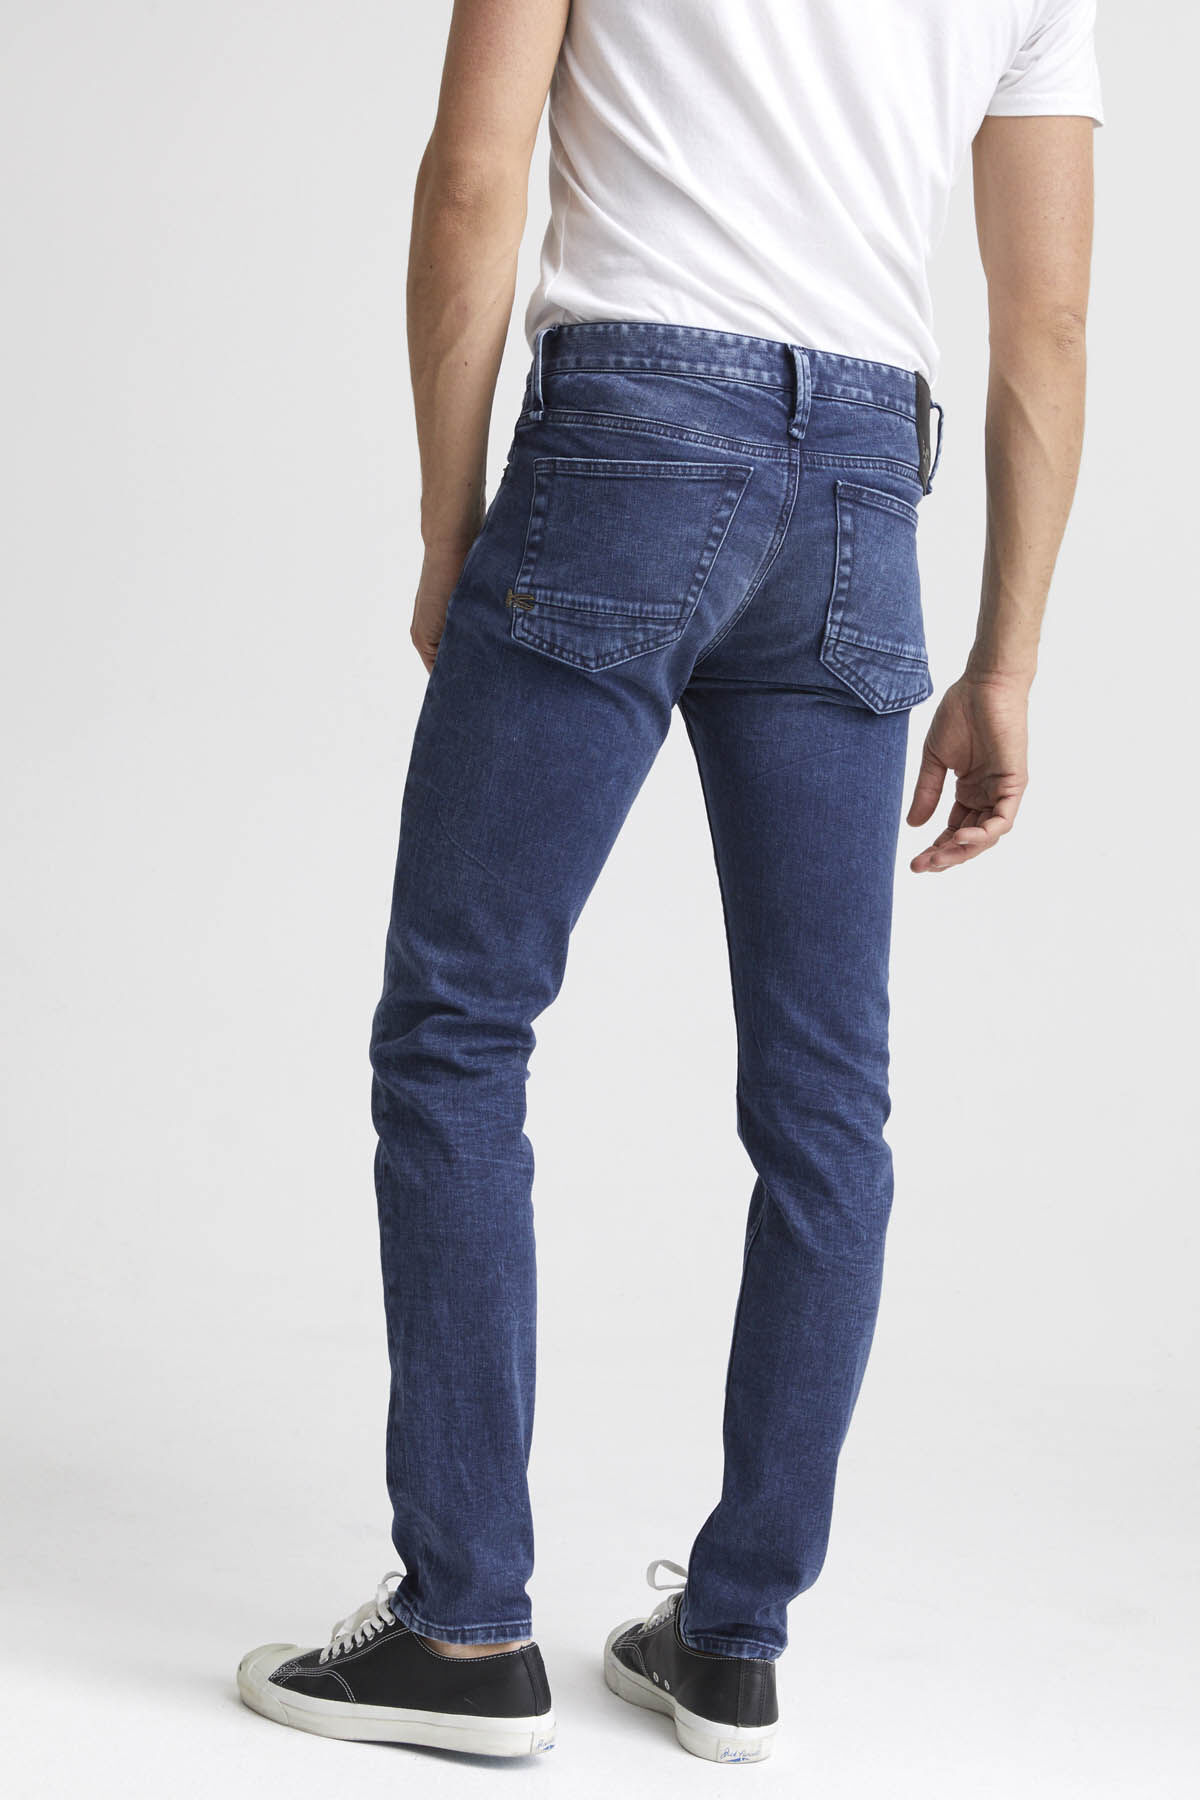 BOLT Left-Hand, Deep Indigo Denim - Skinny Fit